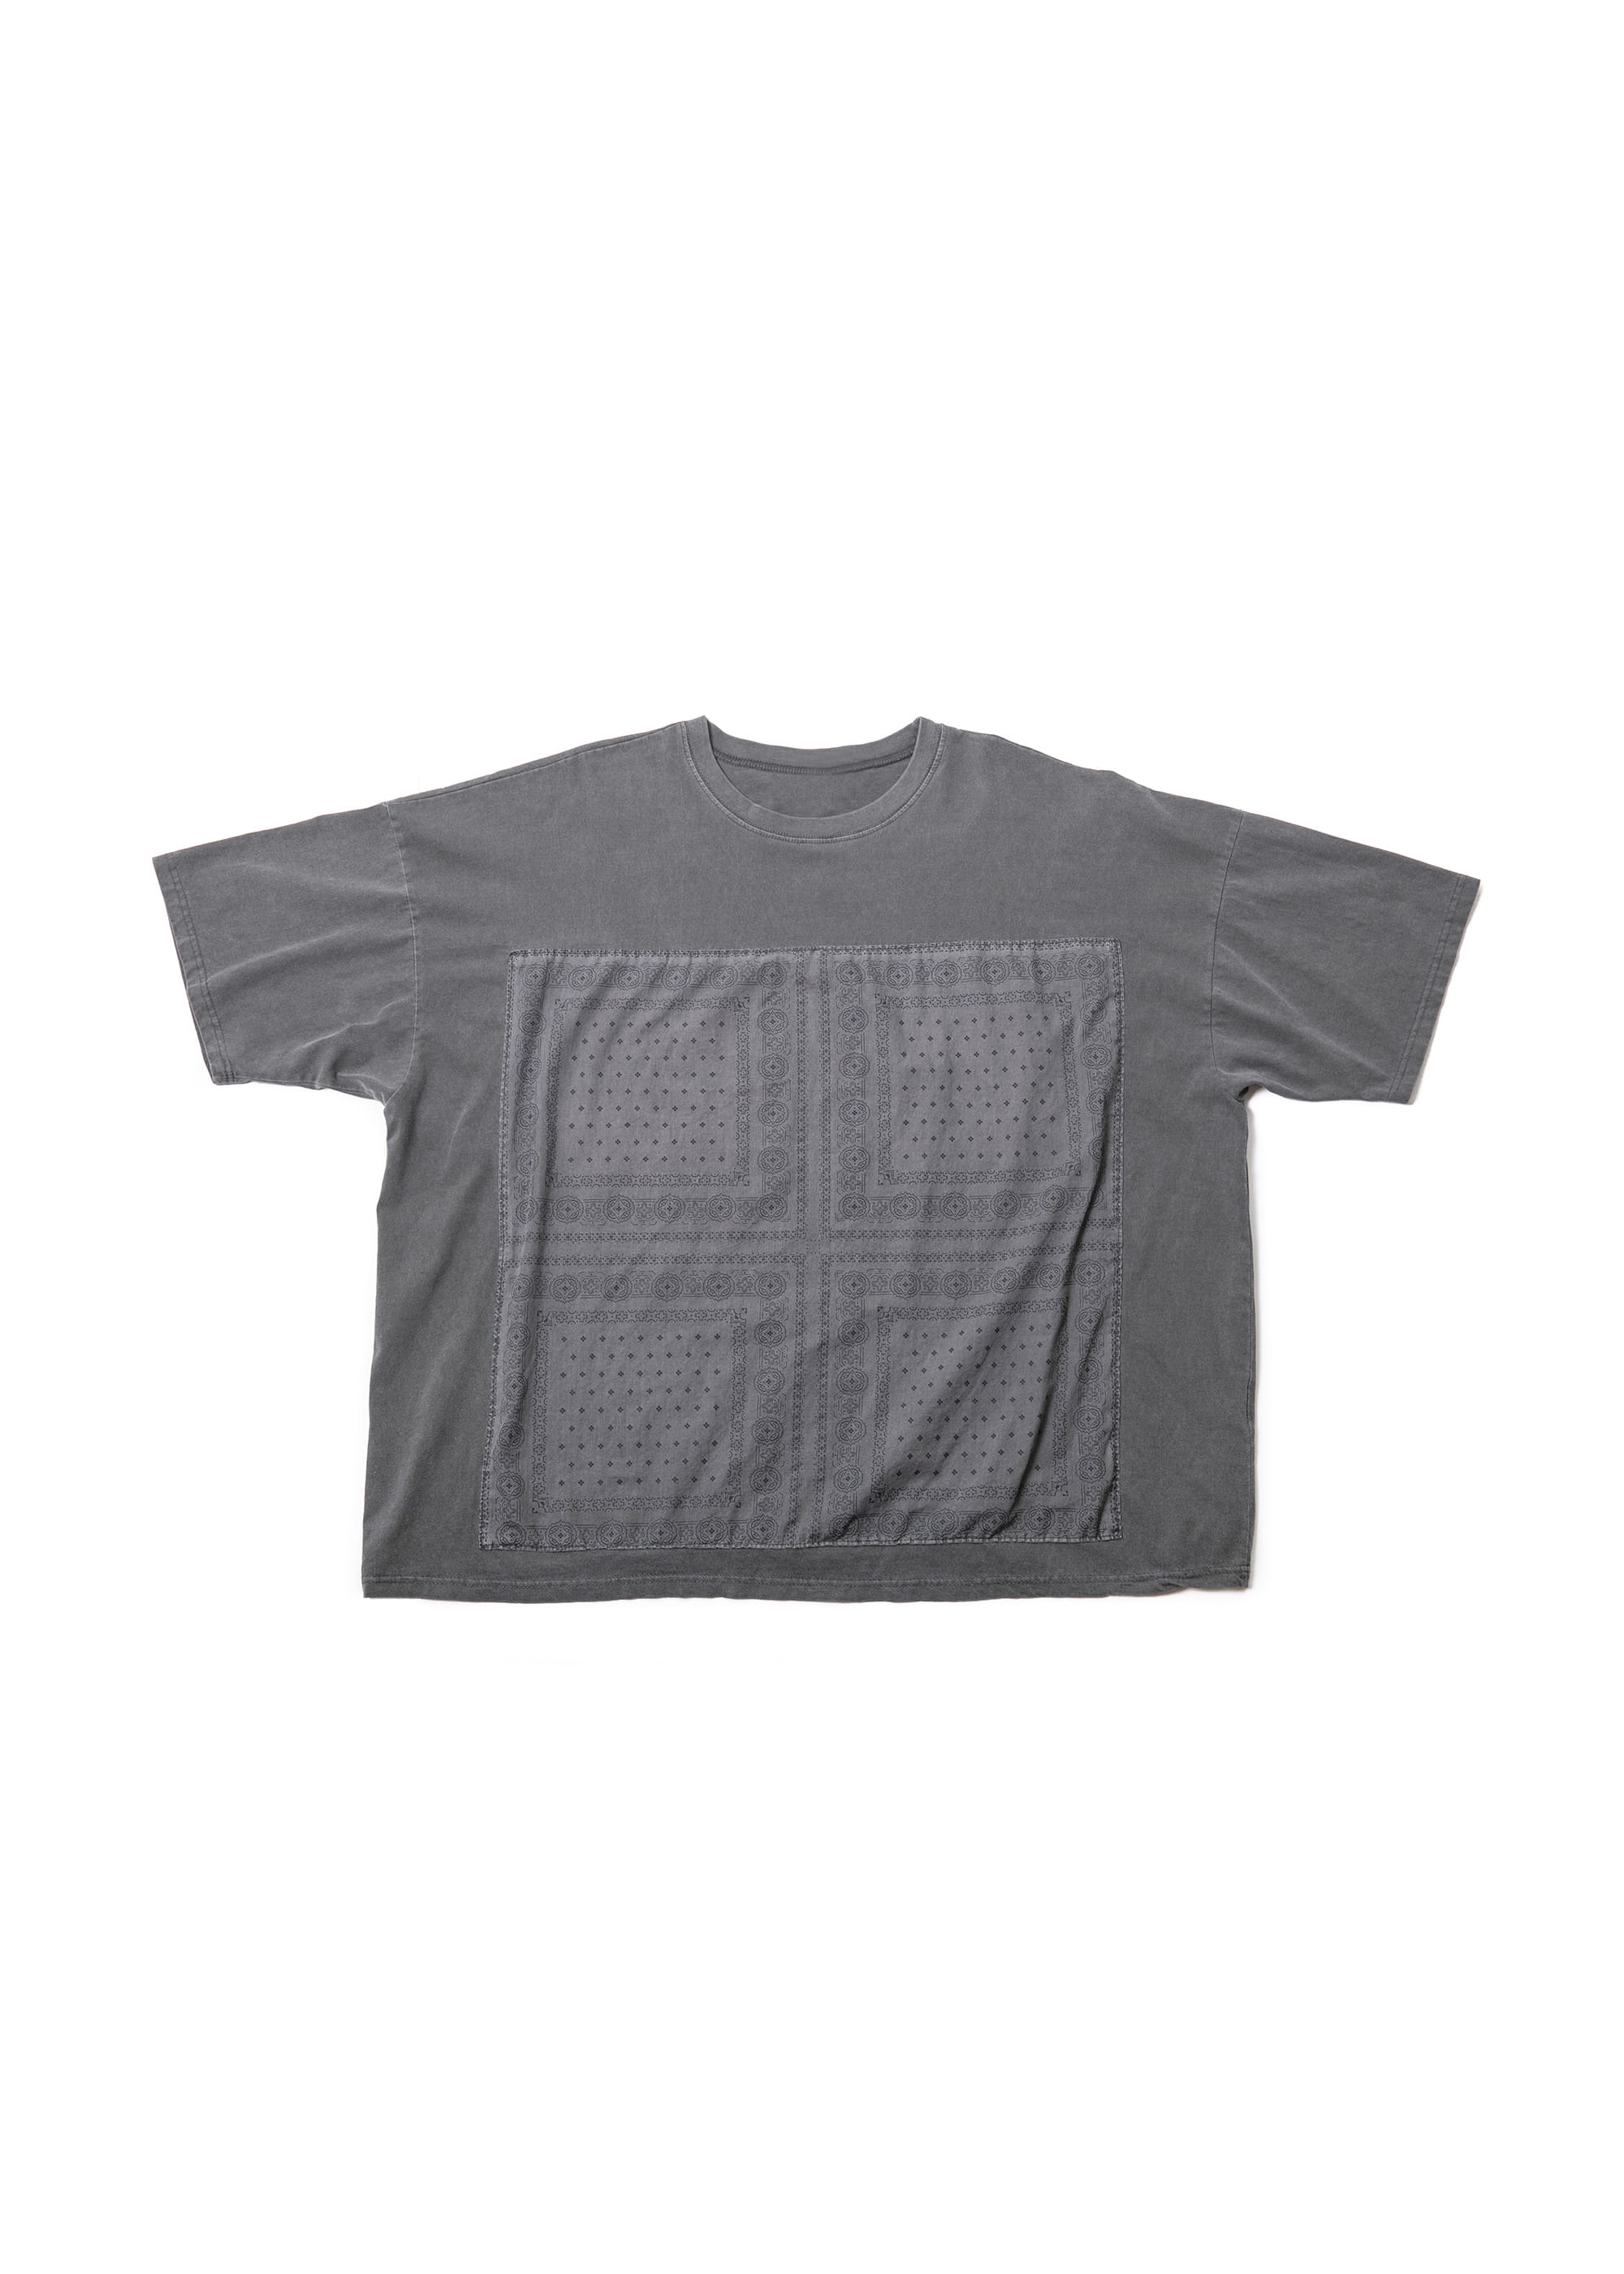 Paisley Pigment Washing Over Tee - Grey